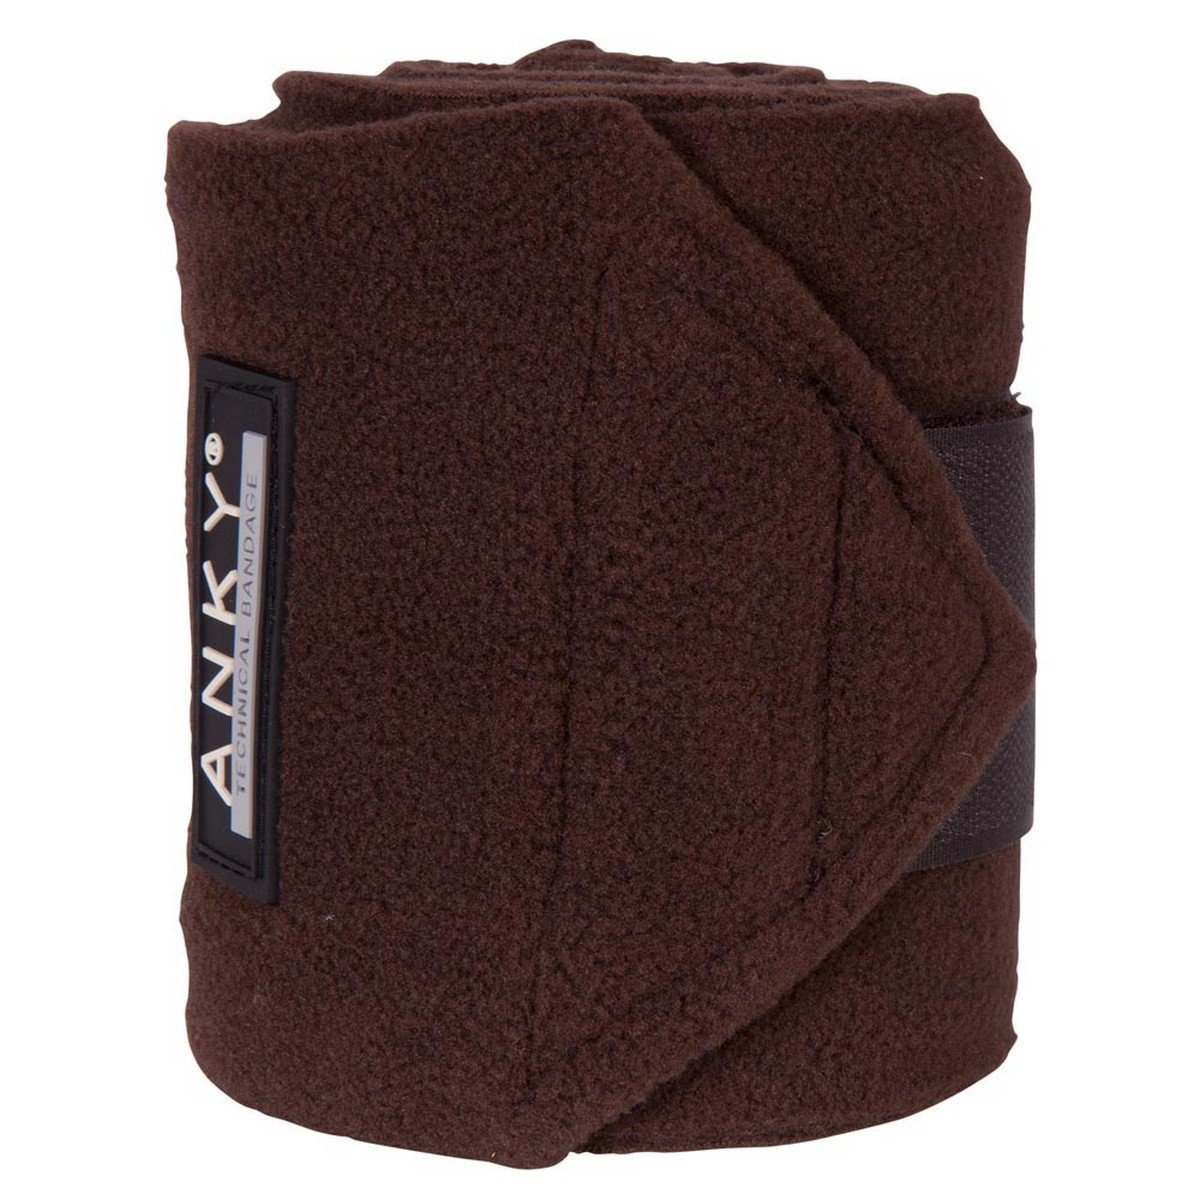 Afbeelding van Anky Bandages Basic Fleece Set van 4 Chocolate 3,5m